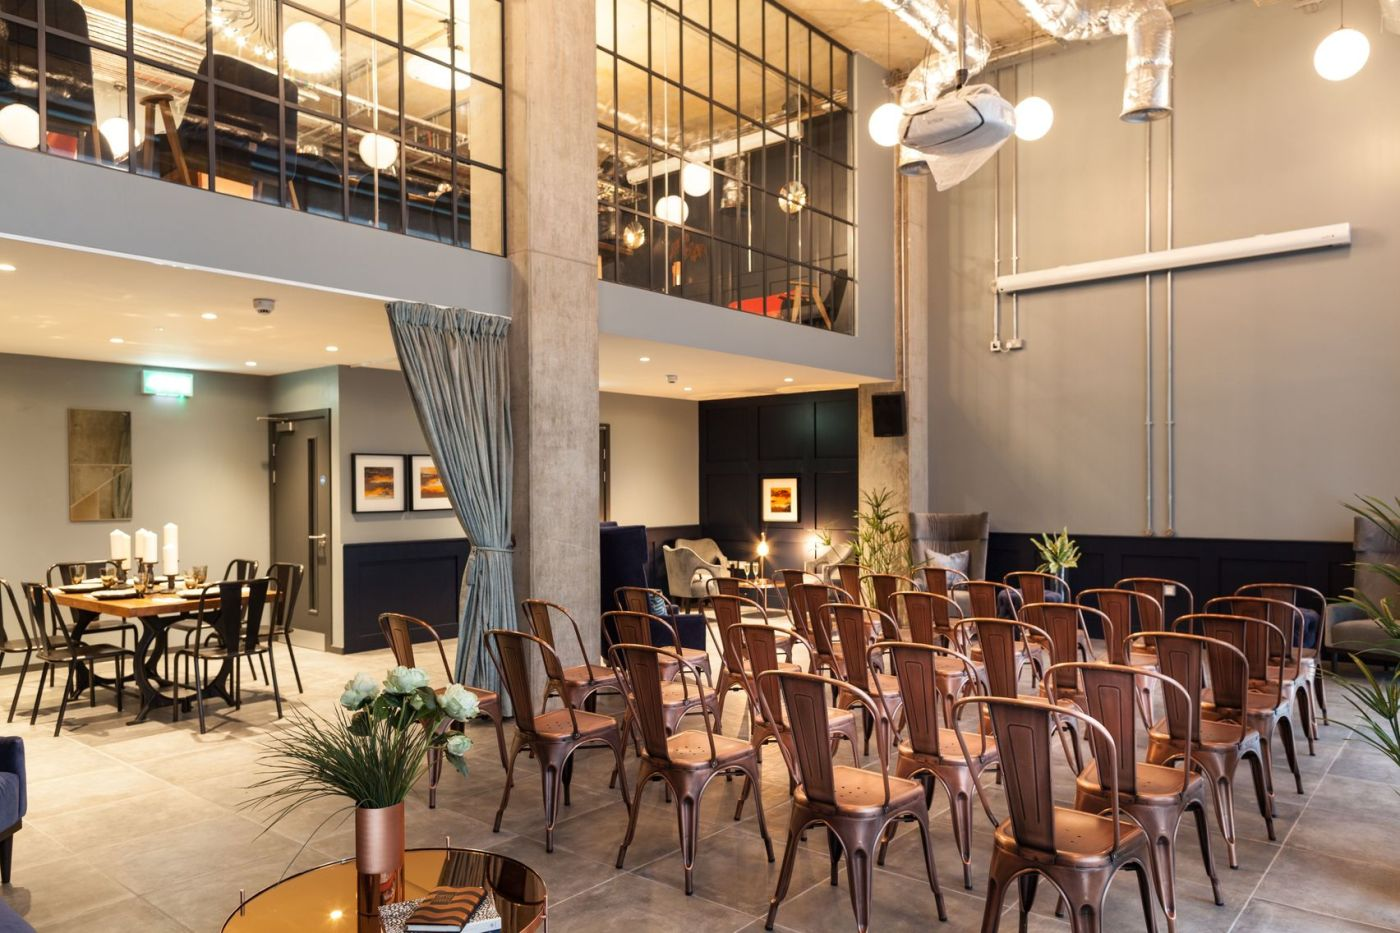 A large event Space with a mezzanine level an rows of chairs